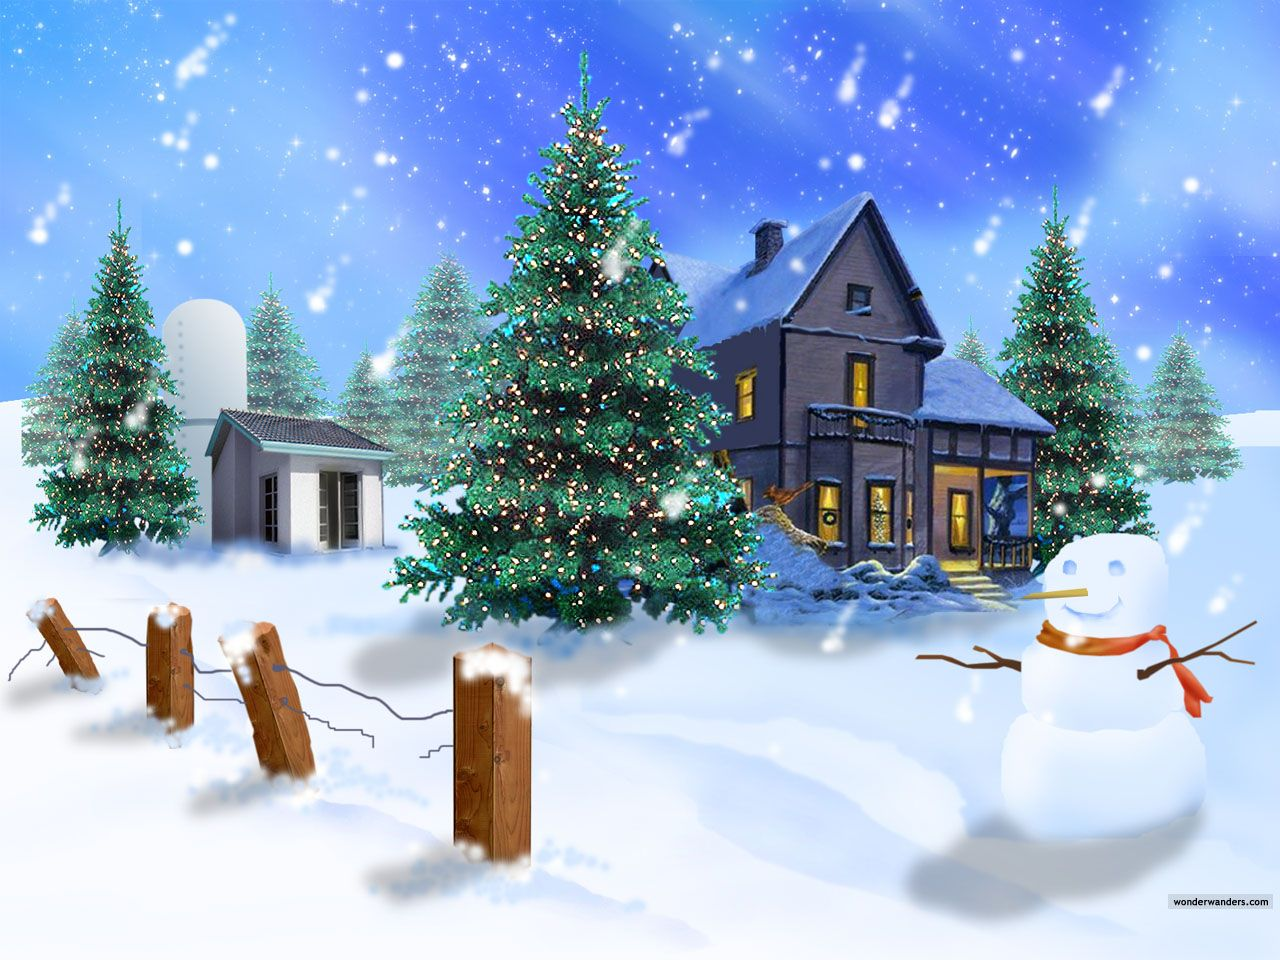 best images about Christmas Wallpaper on Pinterest Christmas